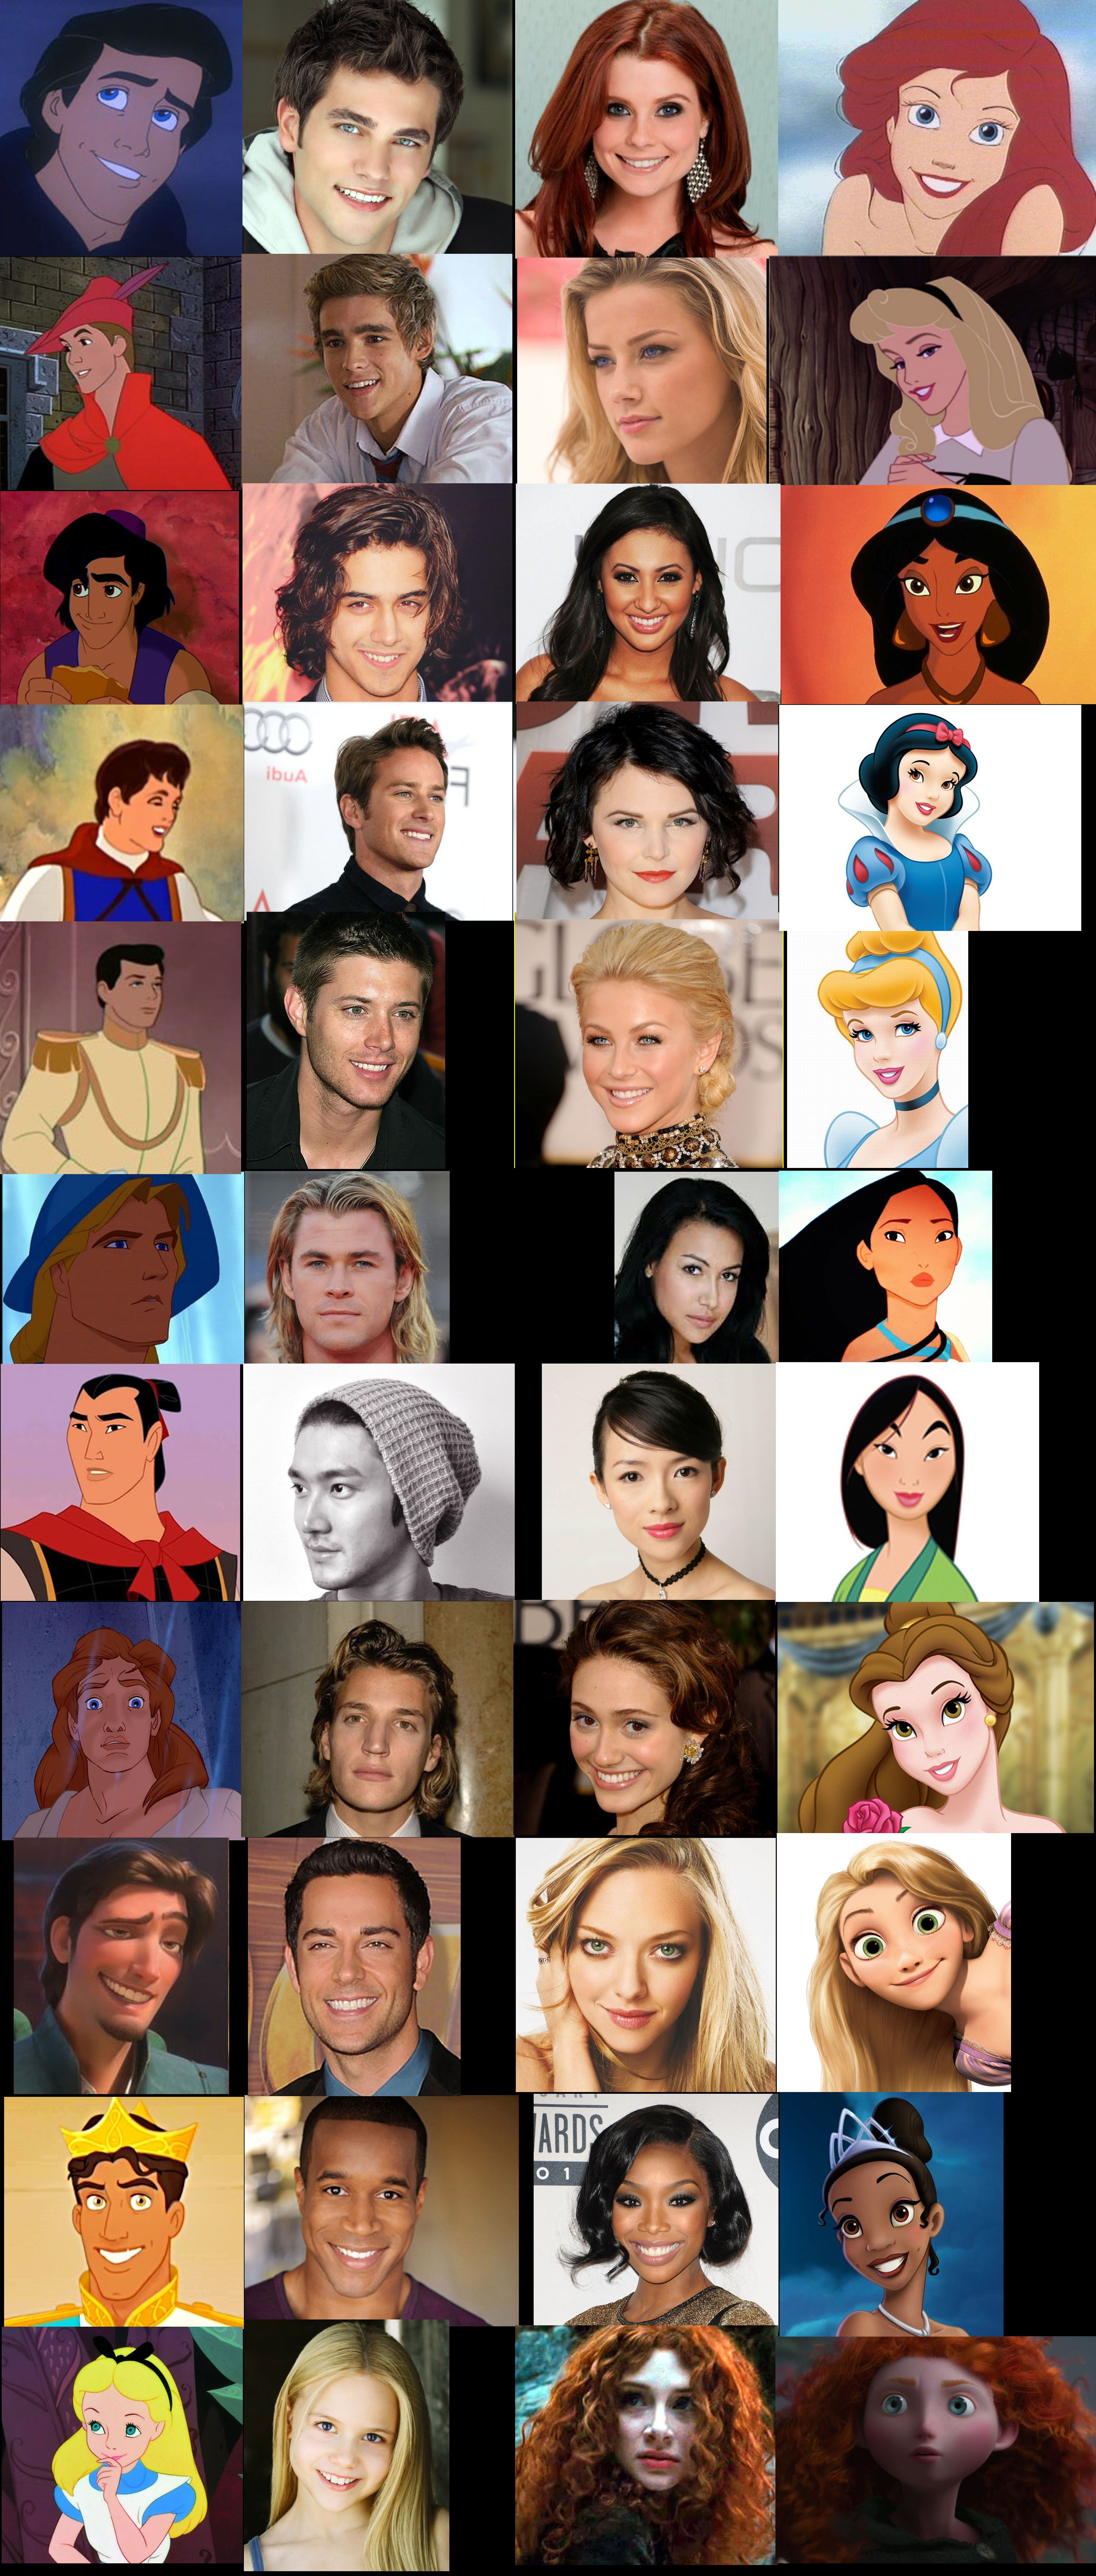 Wow! Best one yet! I think that they should make a real Disney